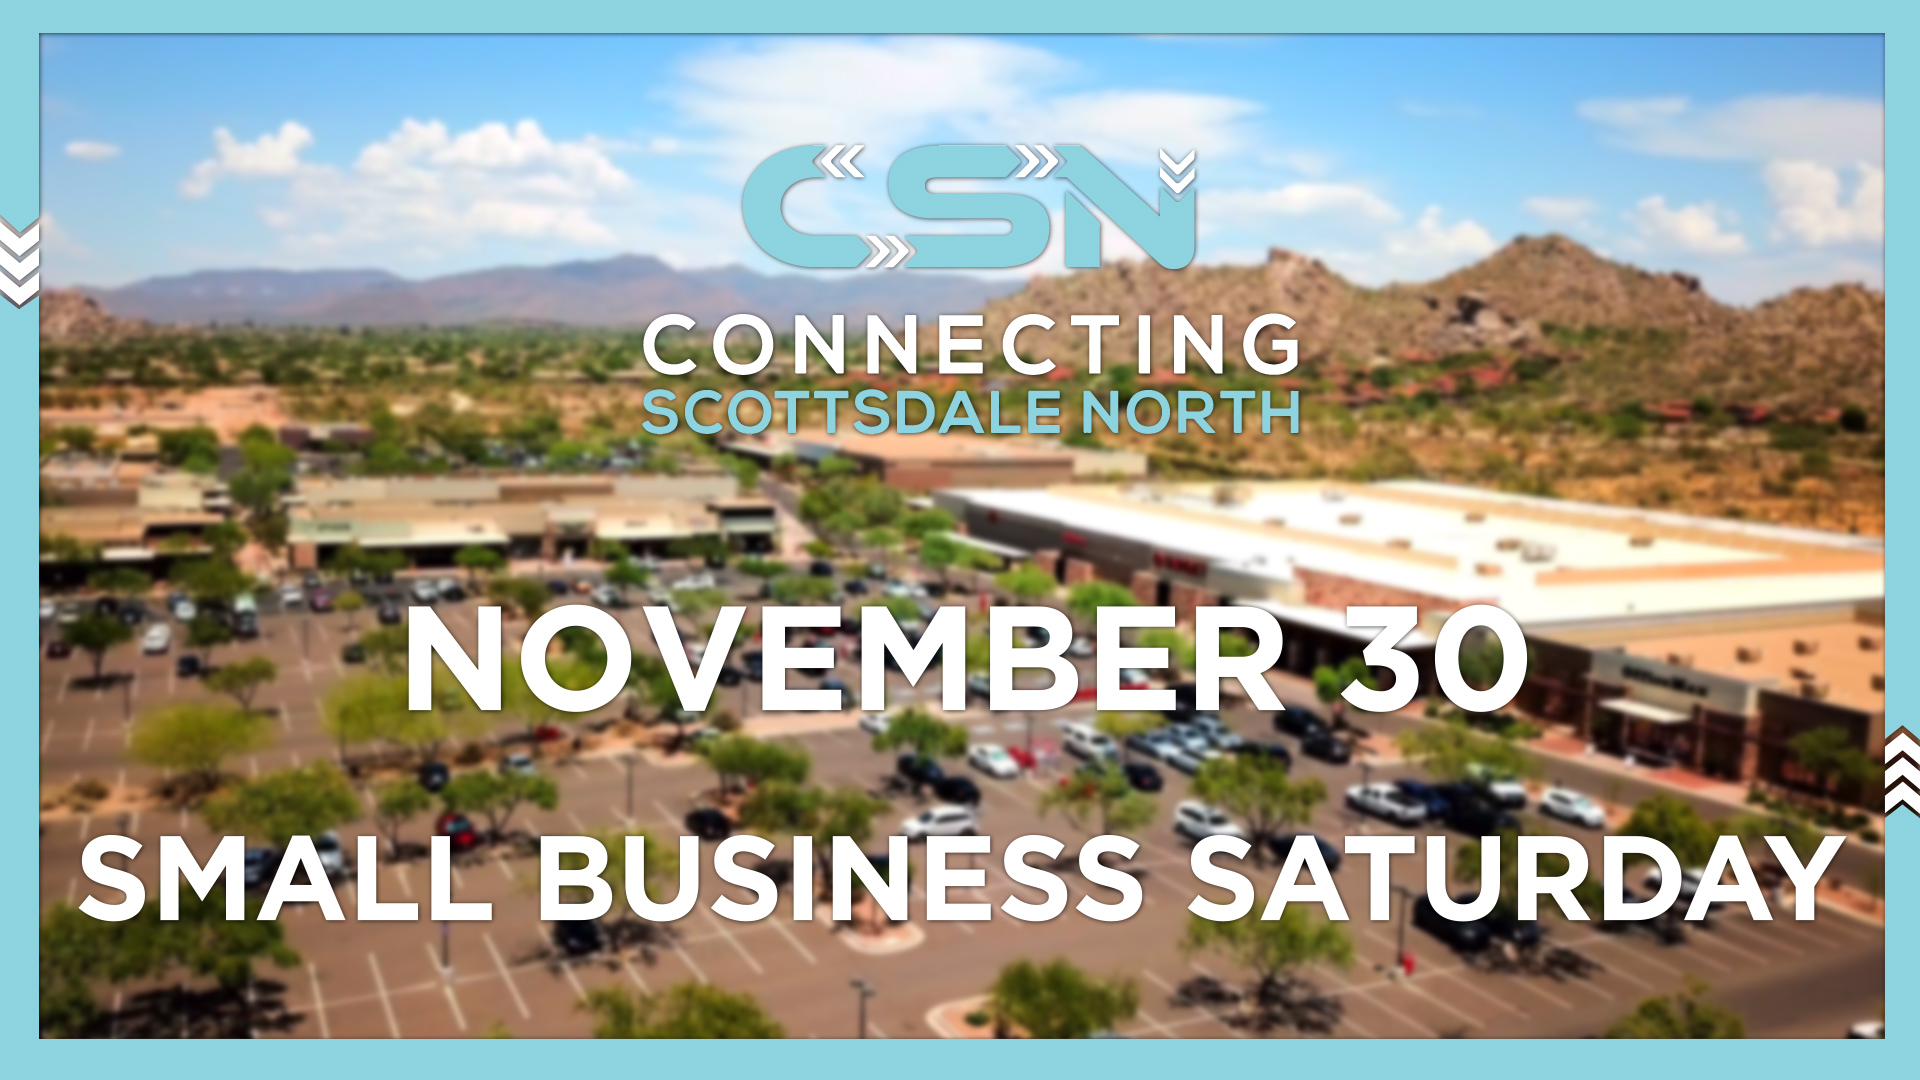 Connecting Scottsdale North Small Business Saturday 2019